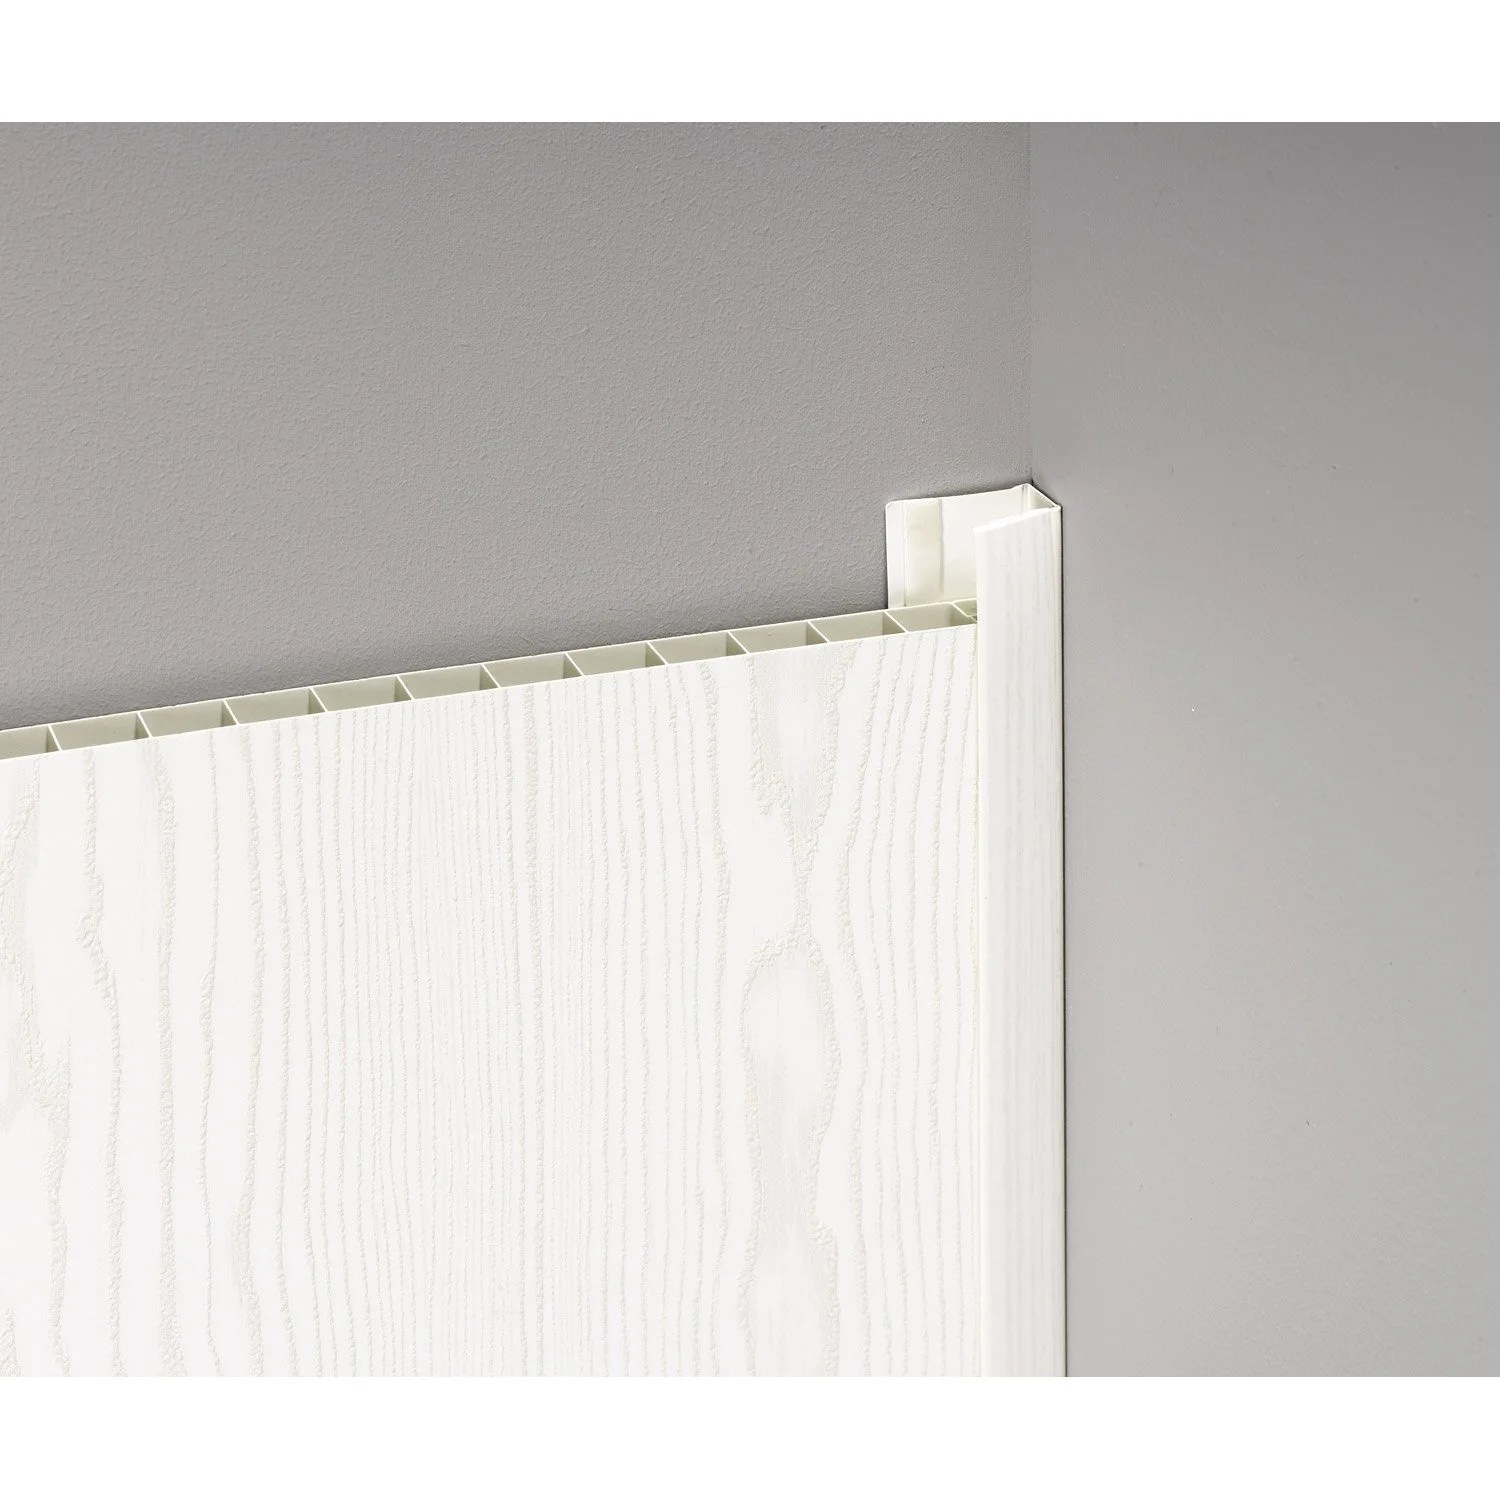 Lambris Blanc Castorama Lambris Bois Pour Plafond Simple Lambris Bois Pour Plafond With